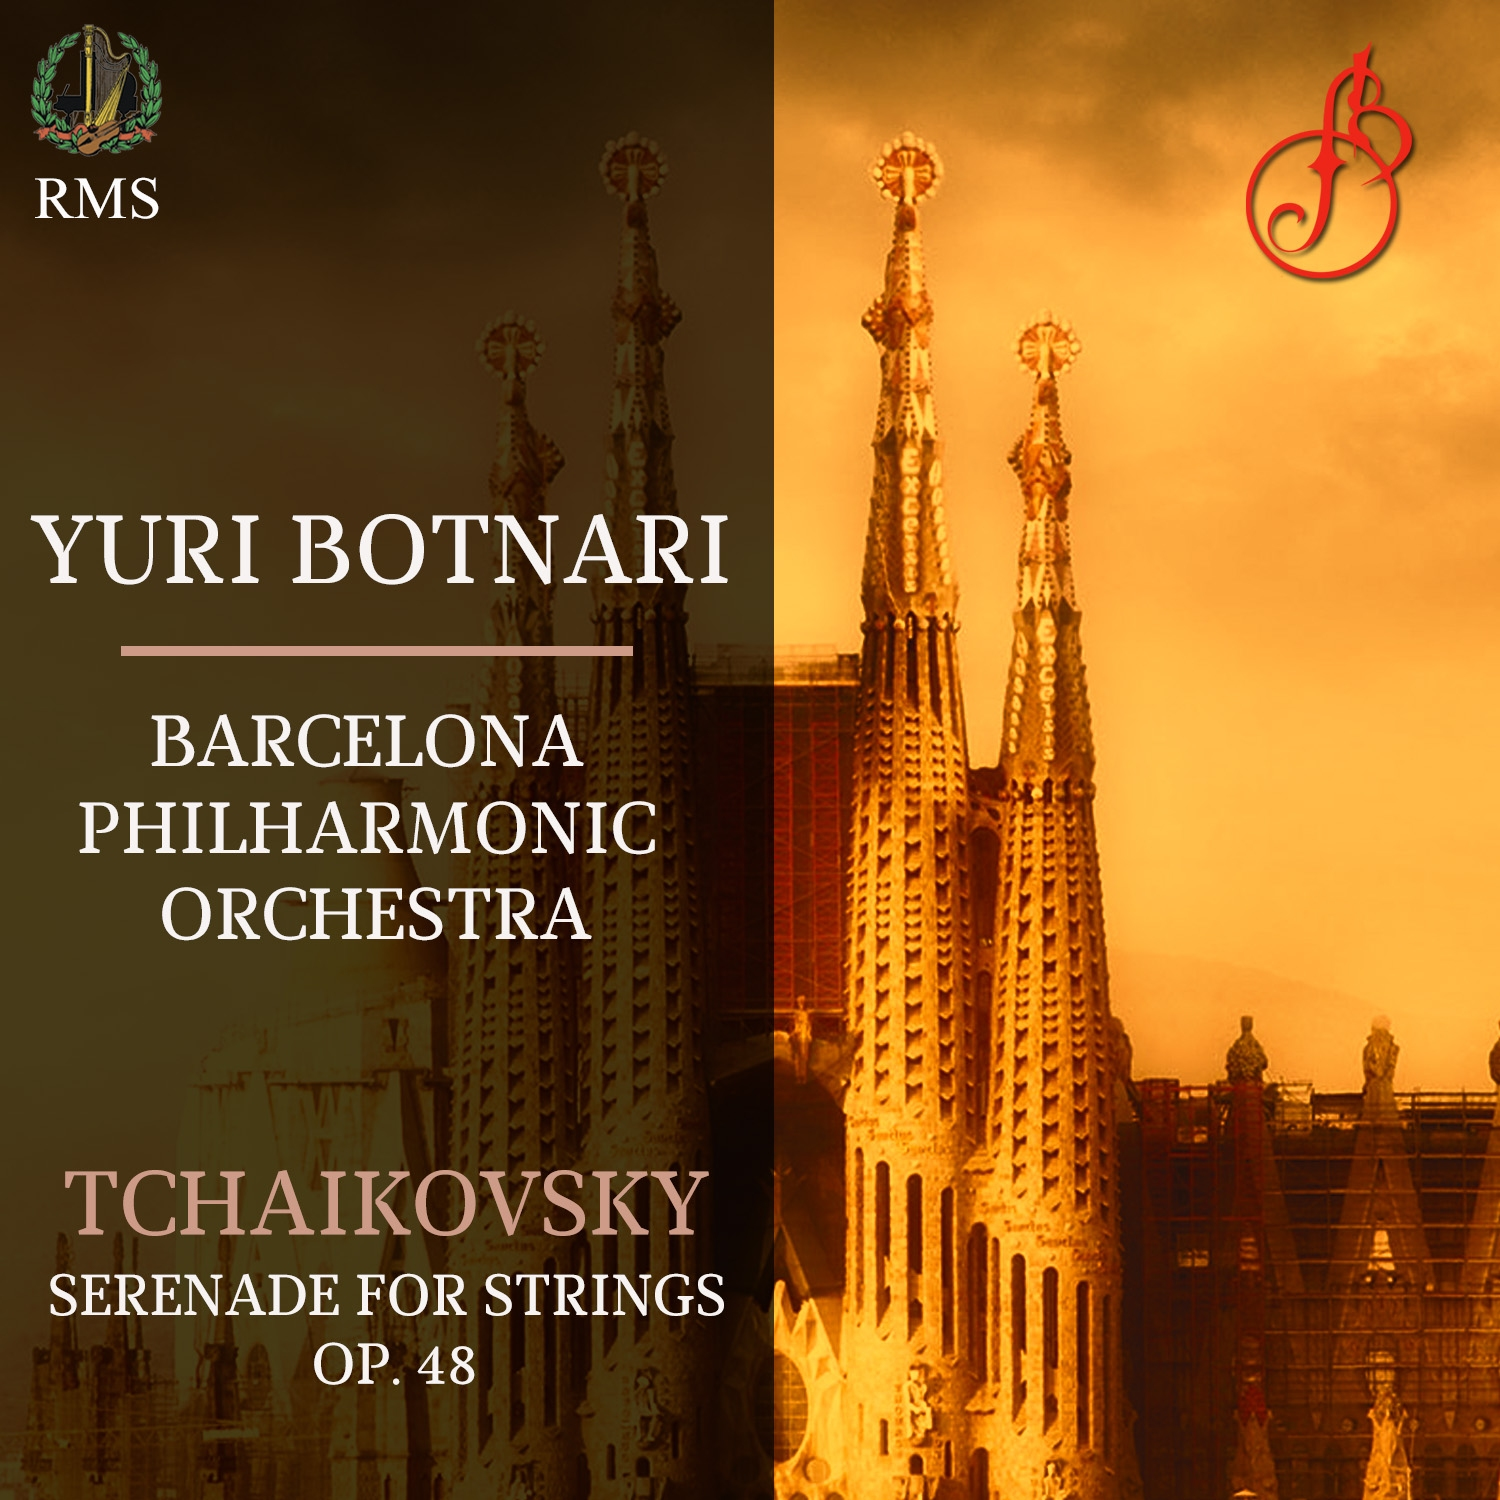 Tchaikovsky: Serenade for Strings in C Major, Op. 48